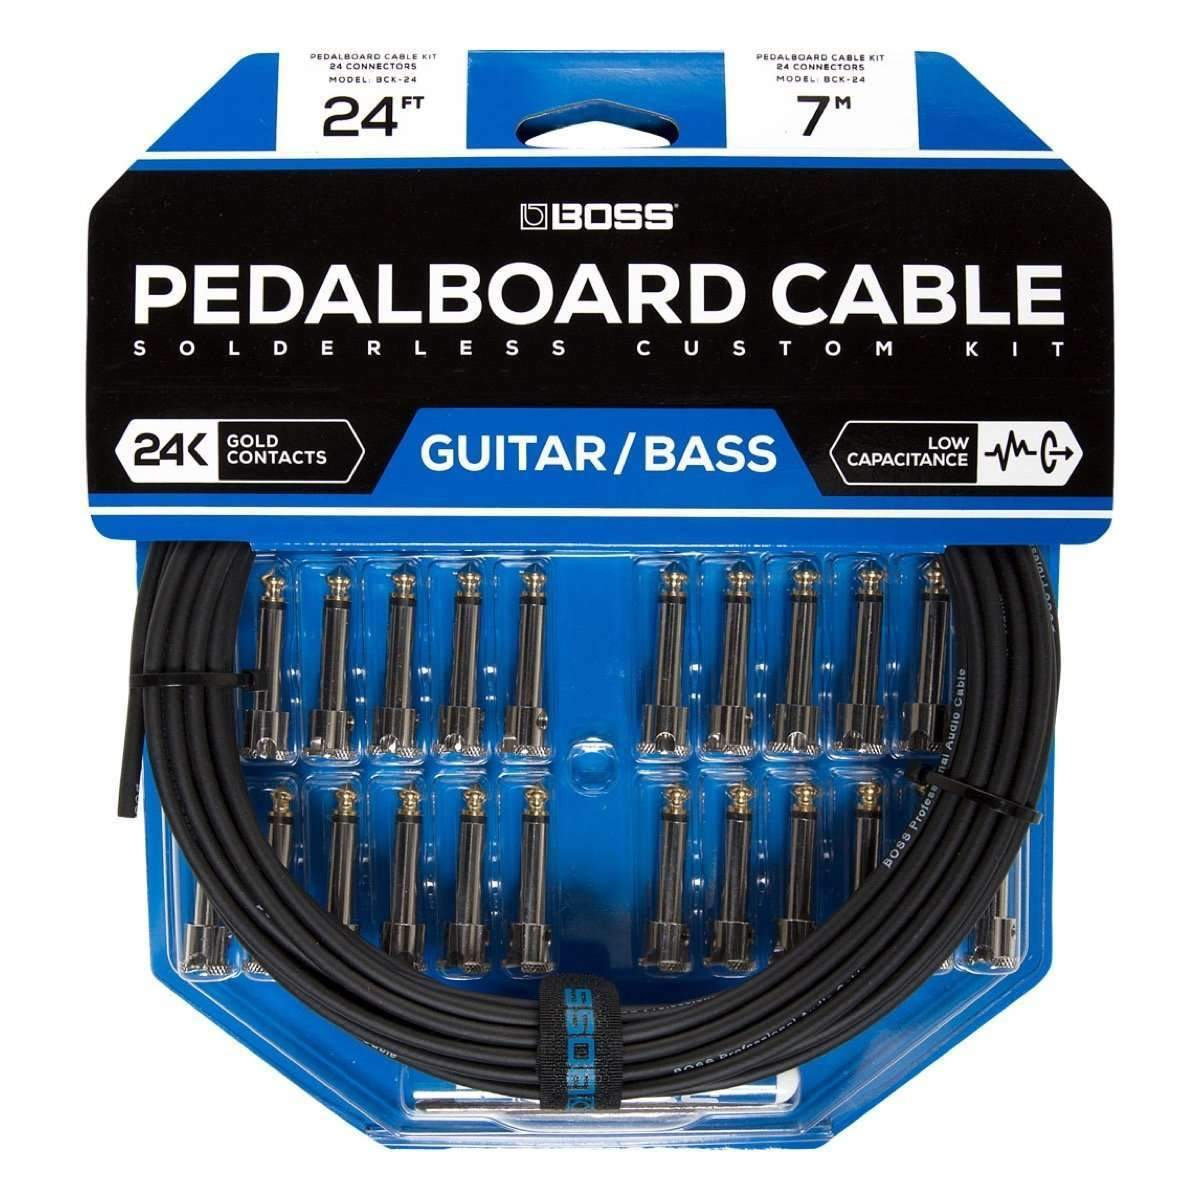 Industrie Music,Boss BCK-24 DIY Pedalboard Cable Kit - 24' Cable, 24 Connectors